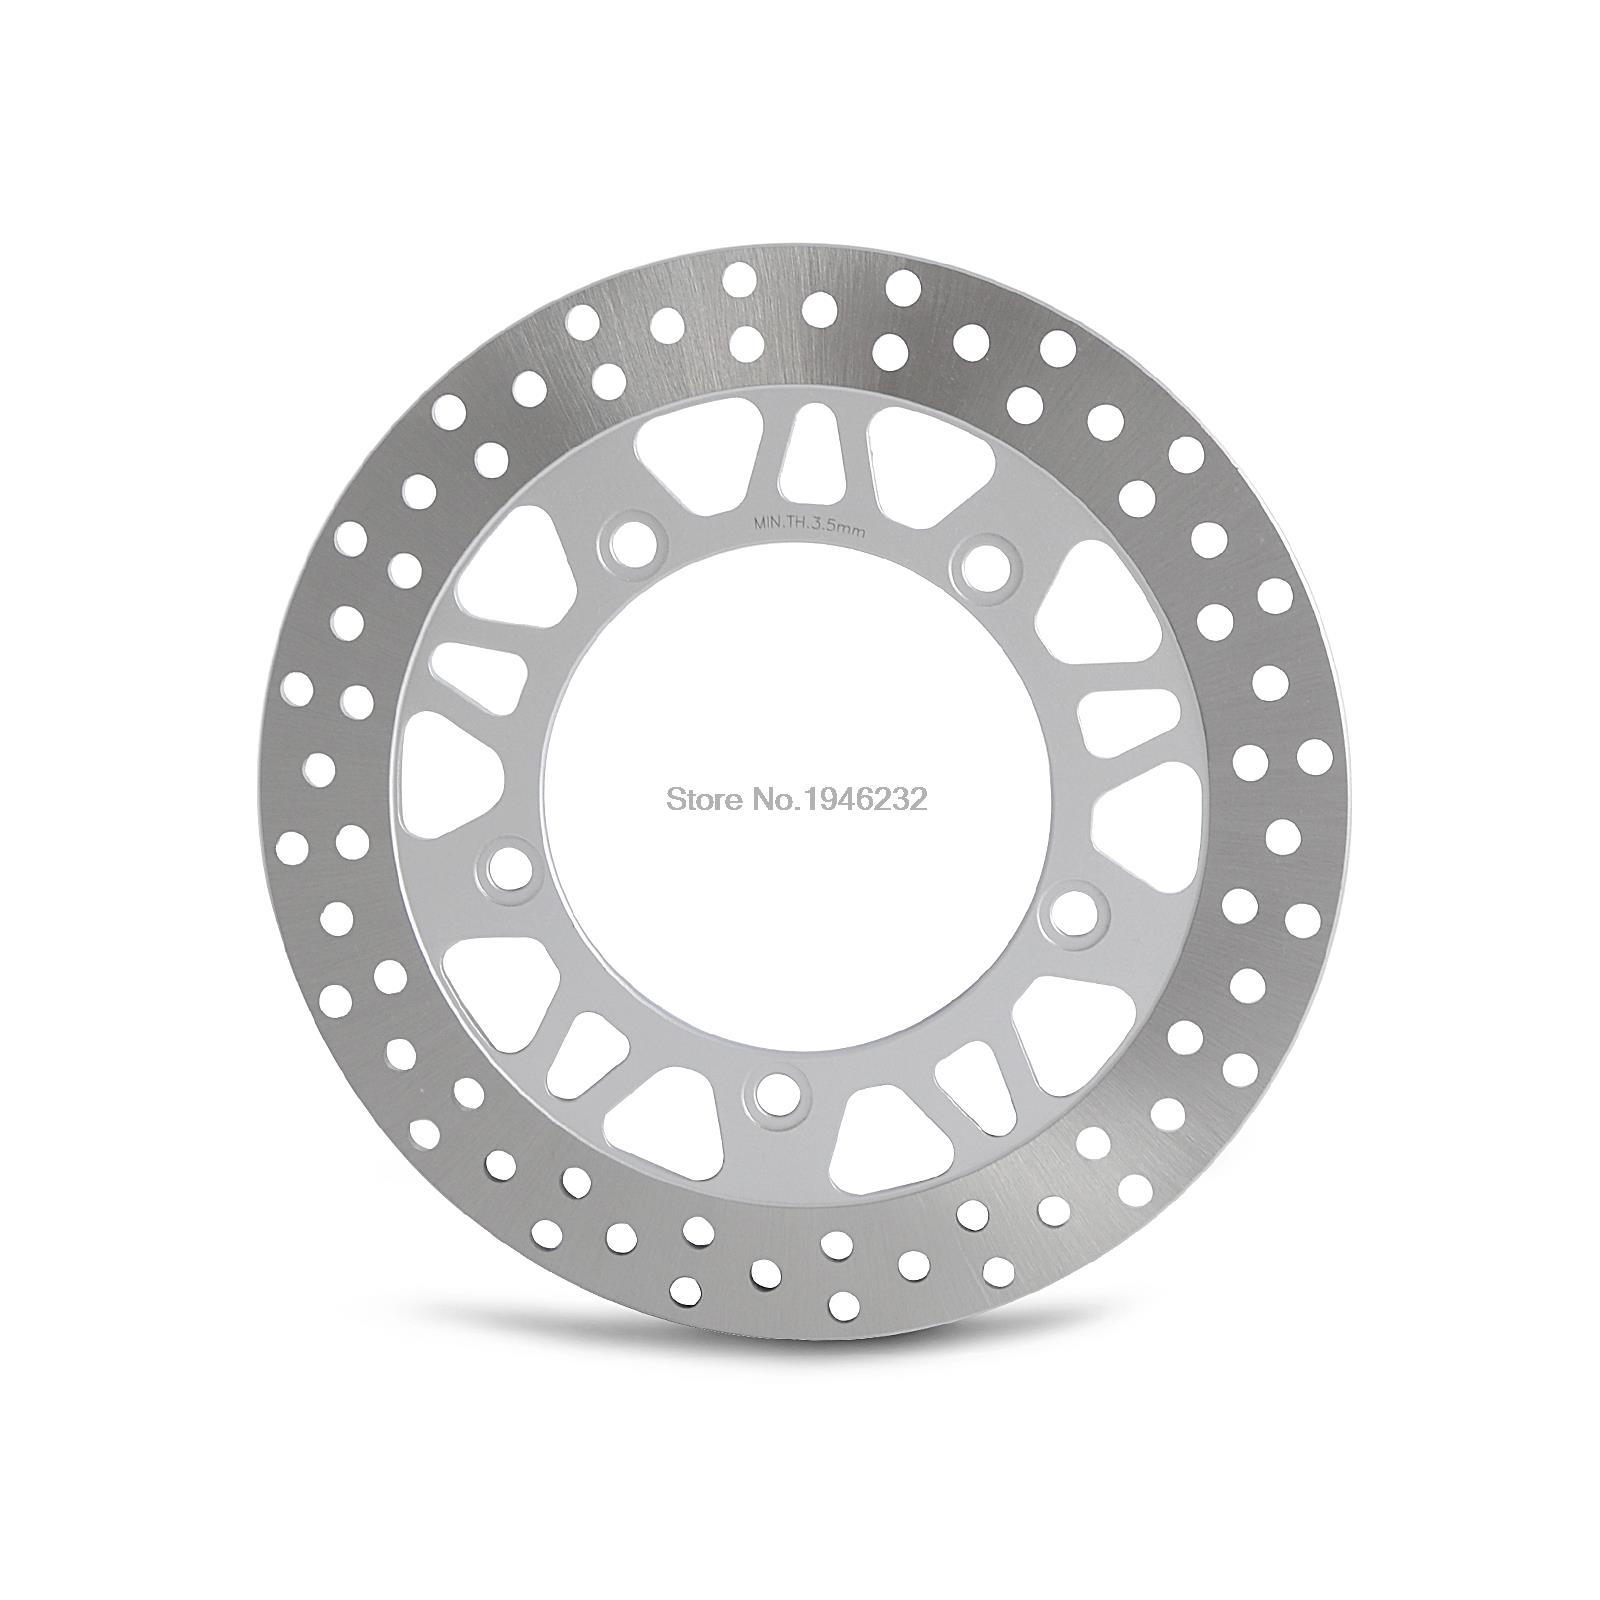 New Motorcycle Front  Rotor Brake Disc For Suzuki  AN 250  400 K7/ZK7/K8/ZK8/K9/L0/L1/L2/L3 Burgman/Non ABS/Skywave 07-13 motorcycle front brake disc rotor for suzuki an250 an400 an650 burgman skywave